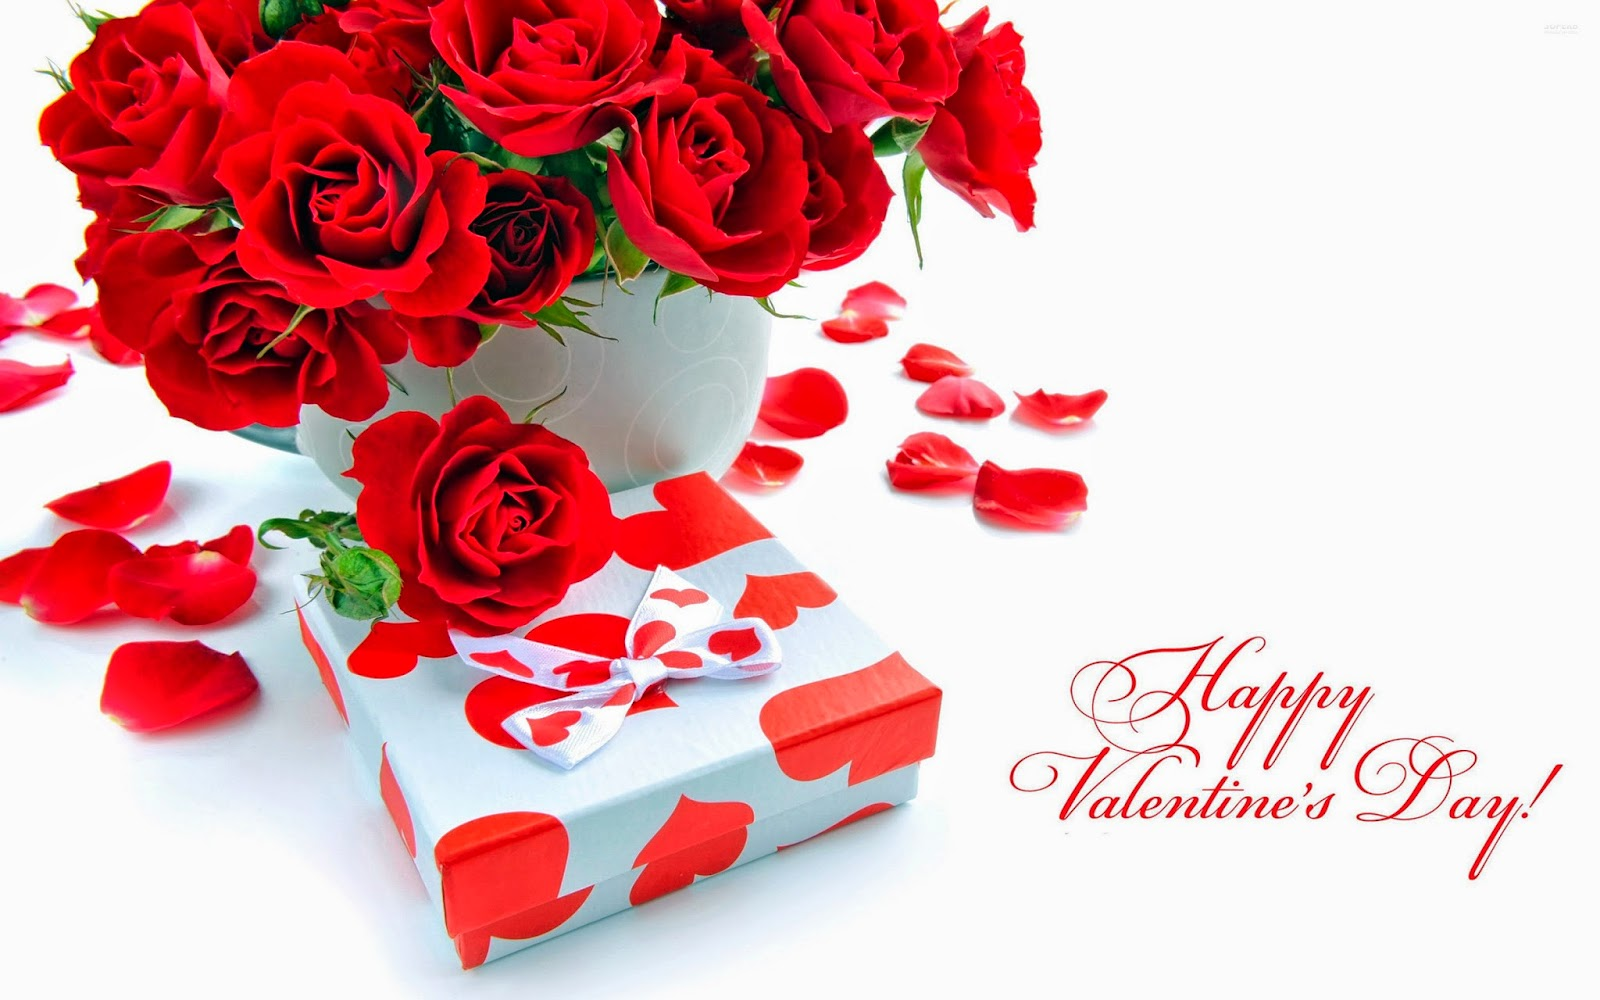 Valentines-Day-greeting-card-background-full-hd-15